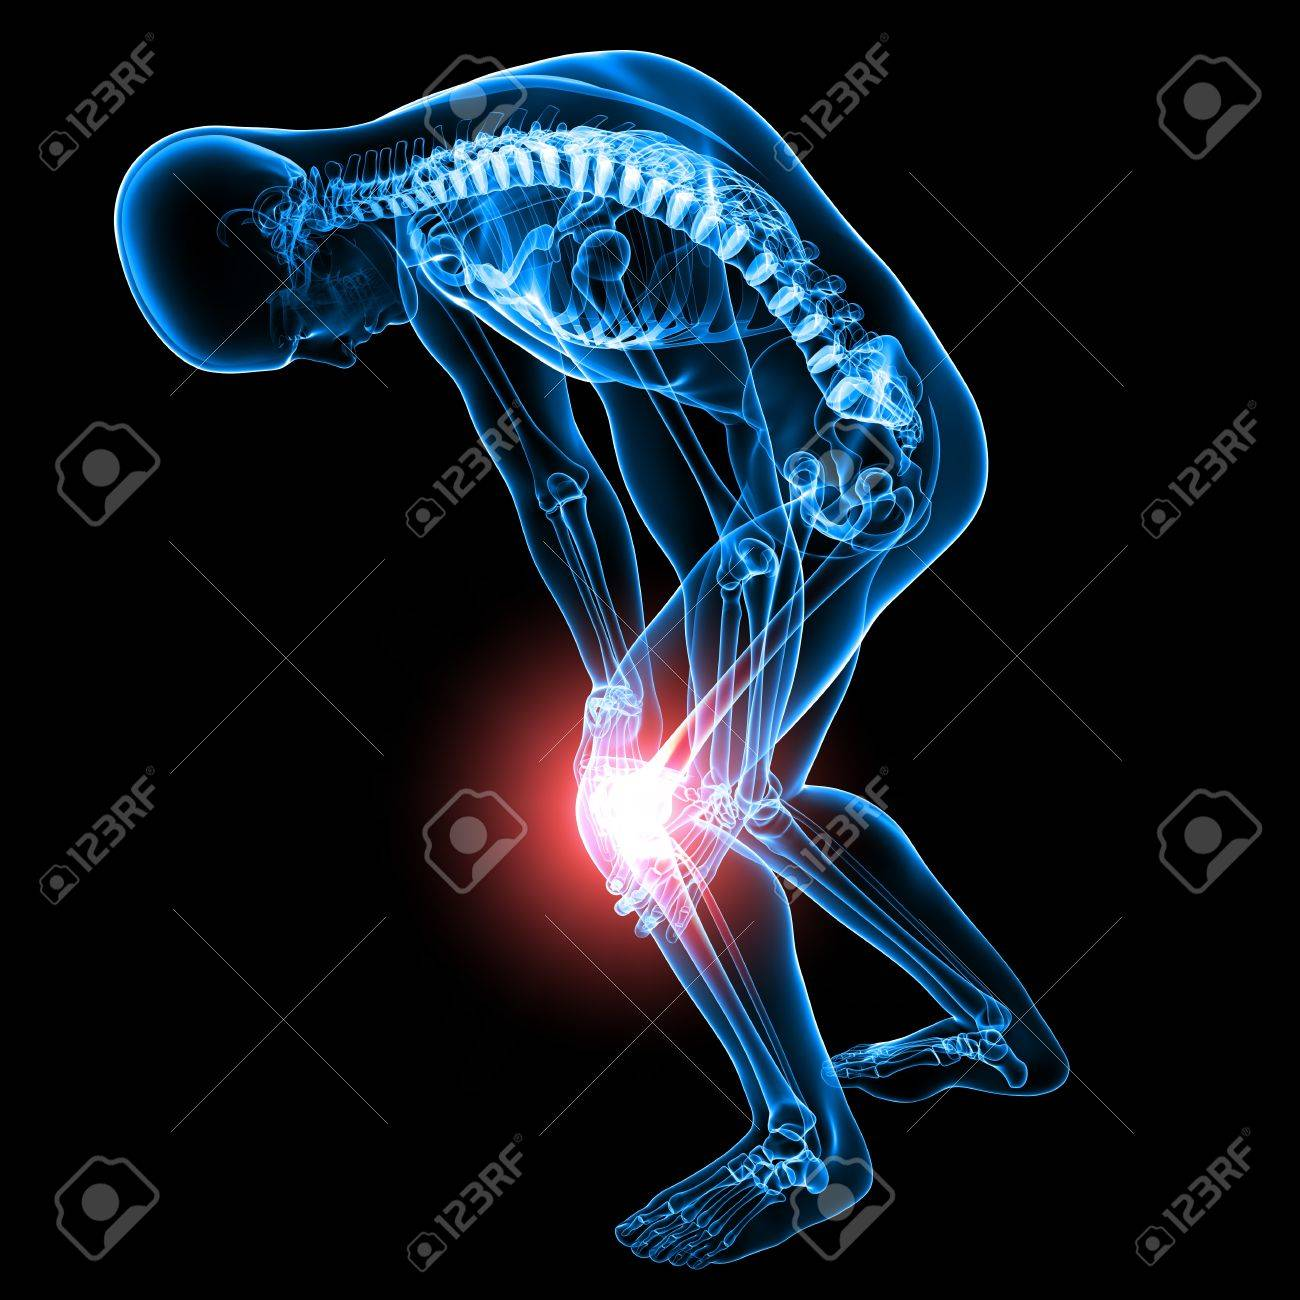 X-ray Anatomy Of Male Knee Pain Stock Photo, Picture And Royalty ...